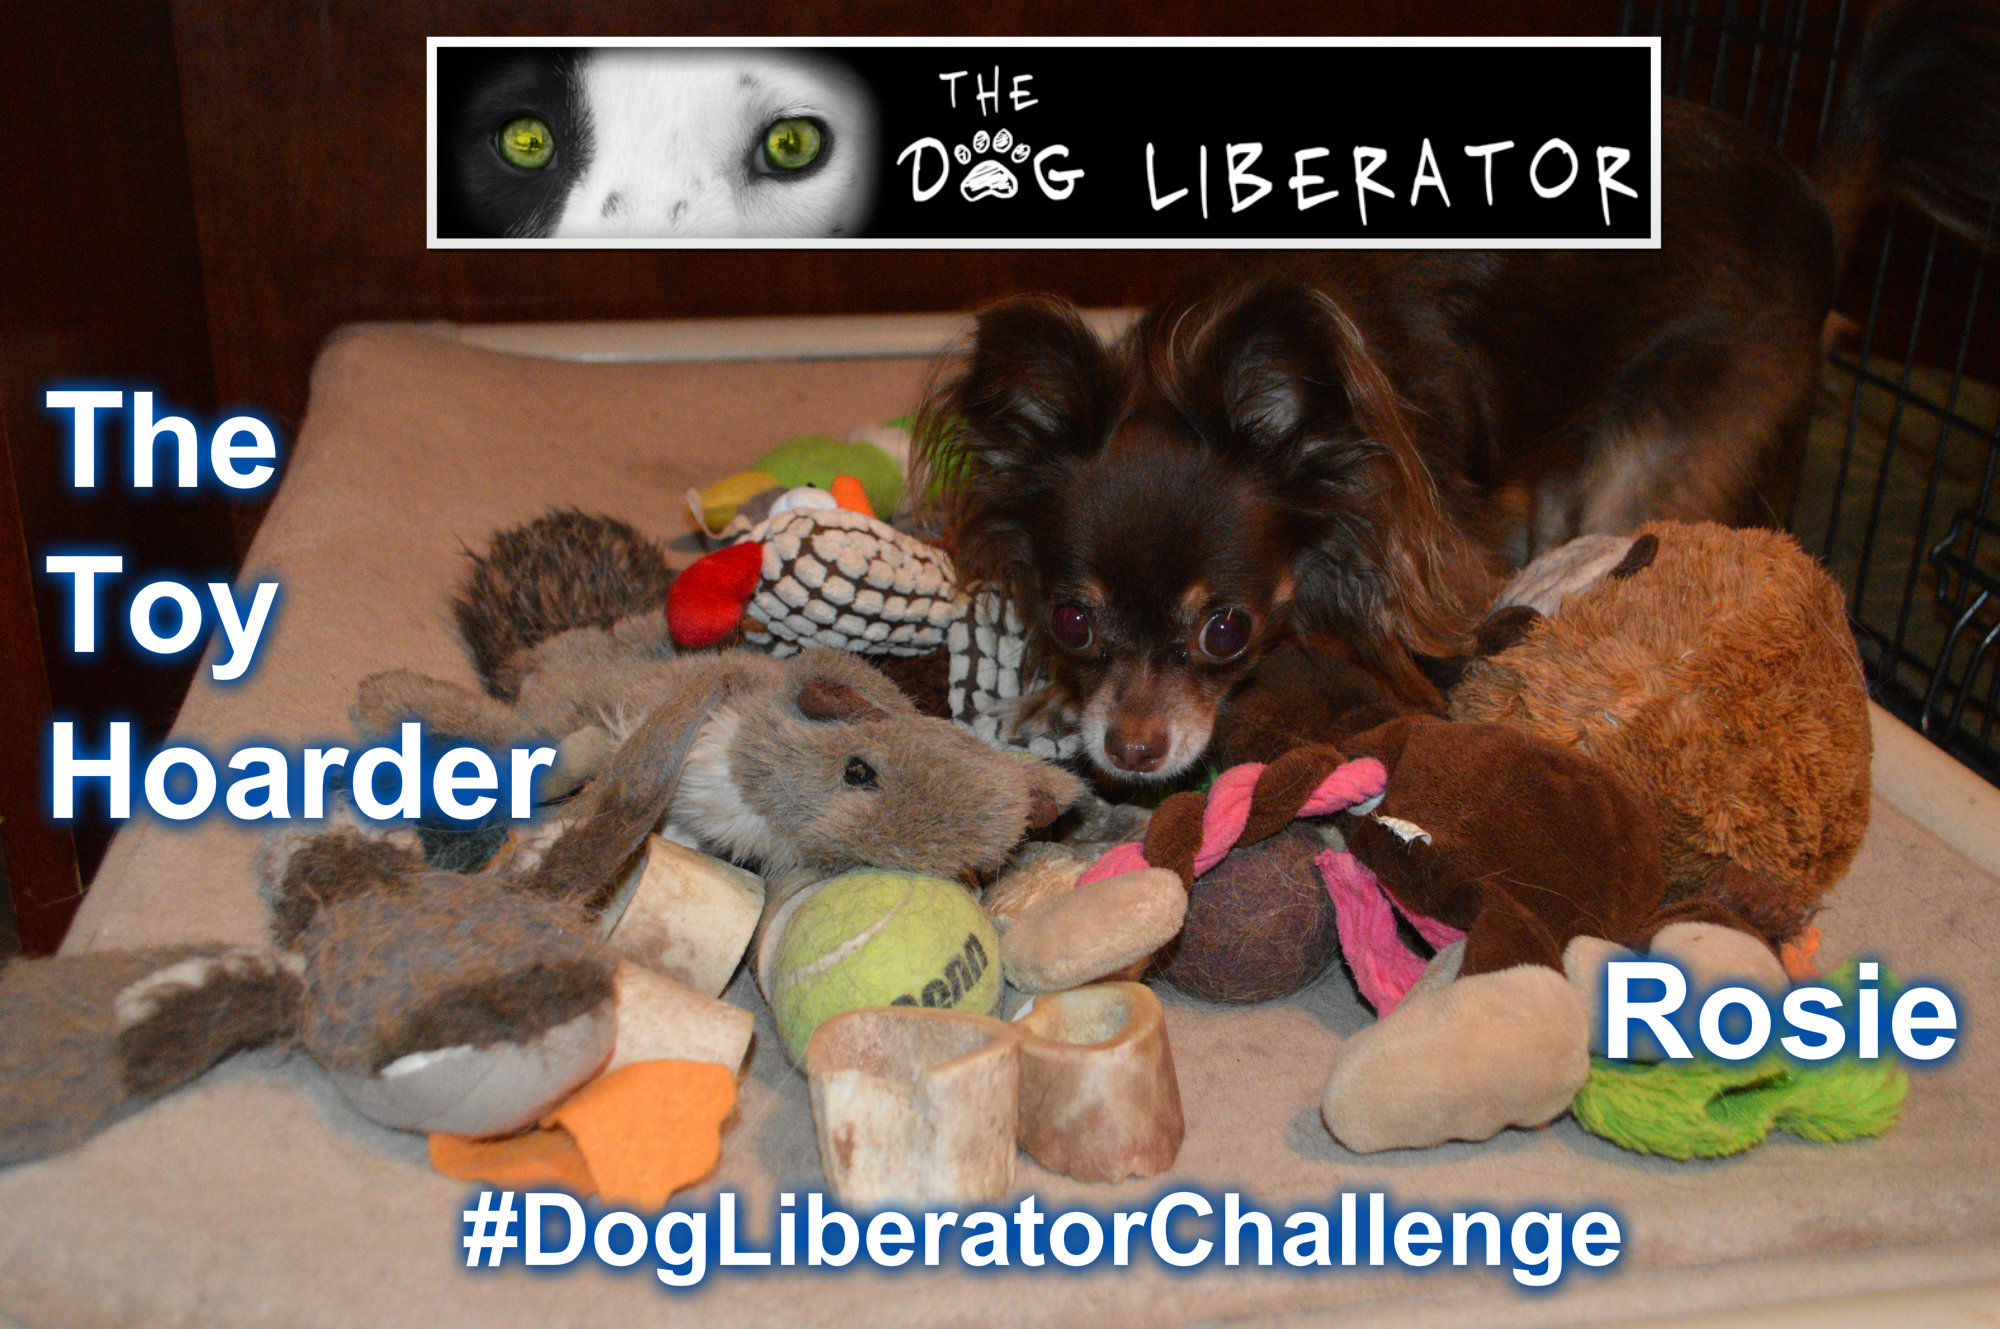 #DogLiberatorChallenge-The Hoarder Collie